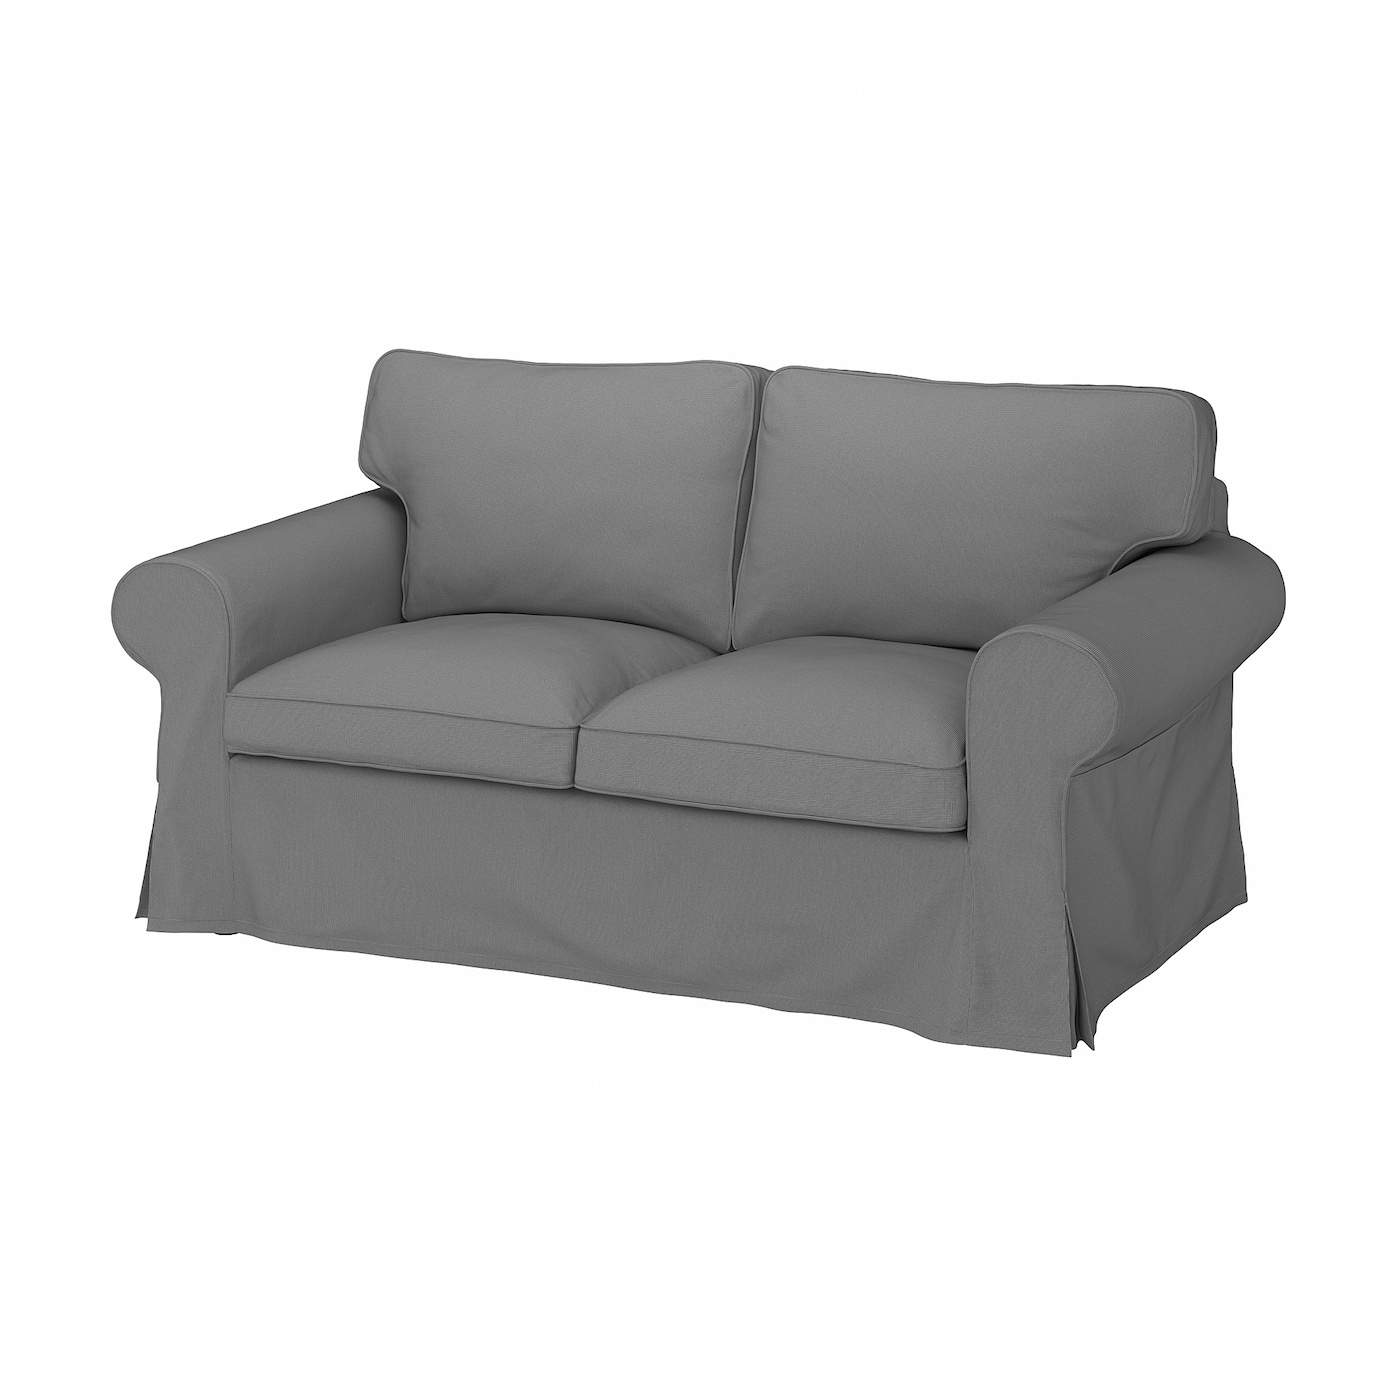 EKTORP Cover for 2 seat sofa Remmarn light grey